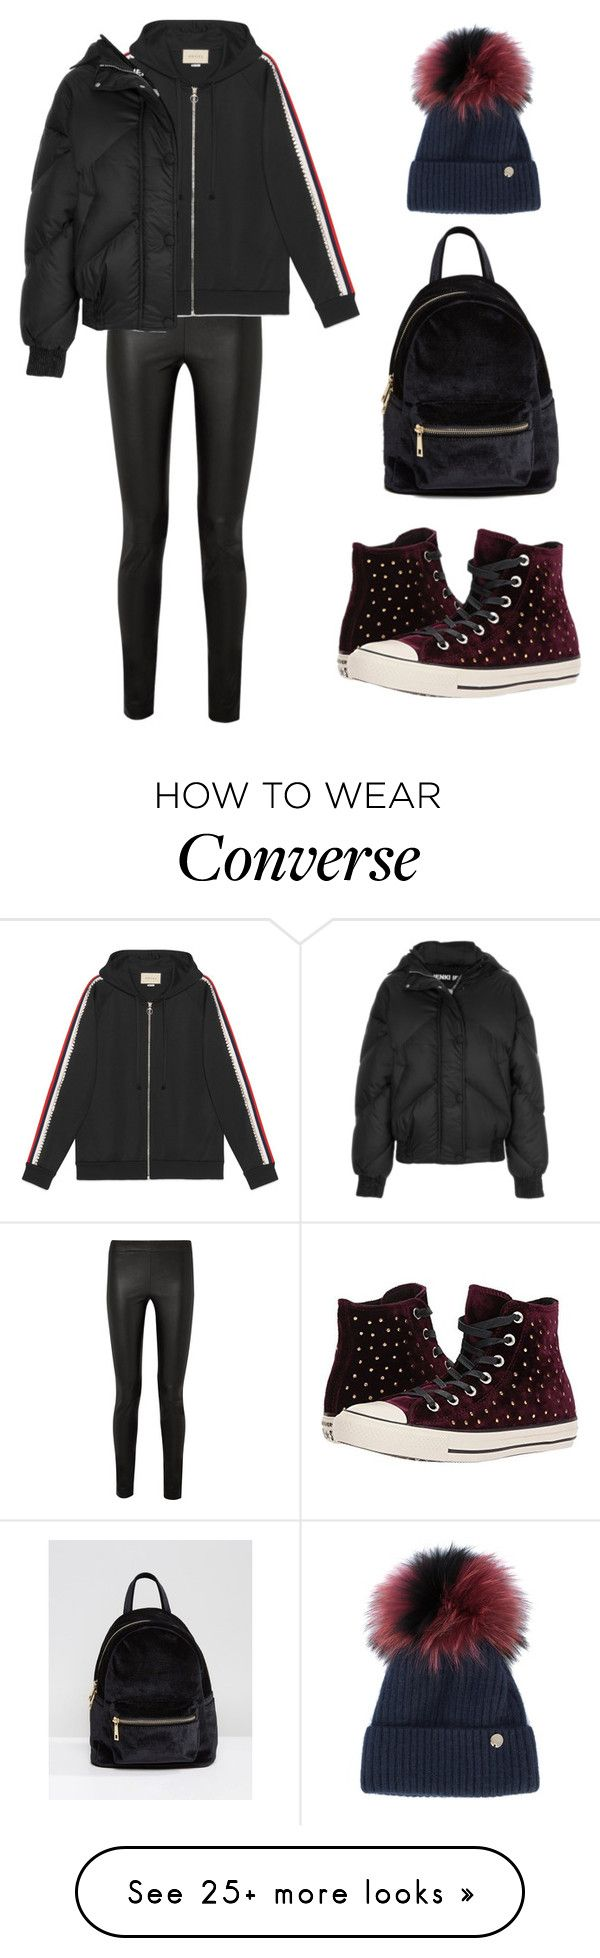 """Untitled #1912"" by needlework on Polyvore featuring The Row, Gucci, Ienki Ienki, Qupid, Converse and Yves Salomon"